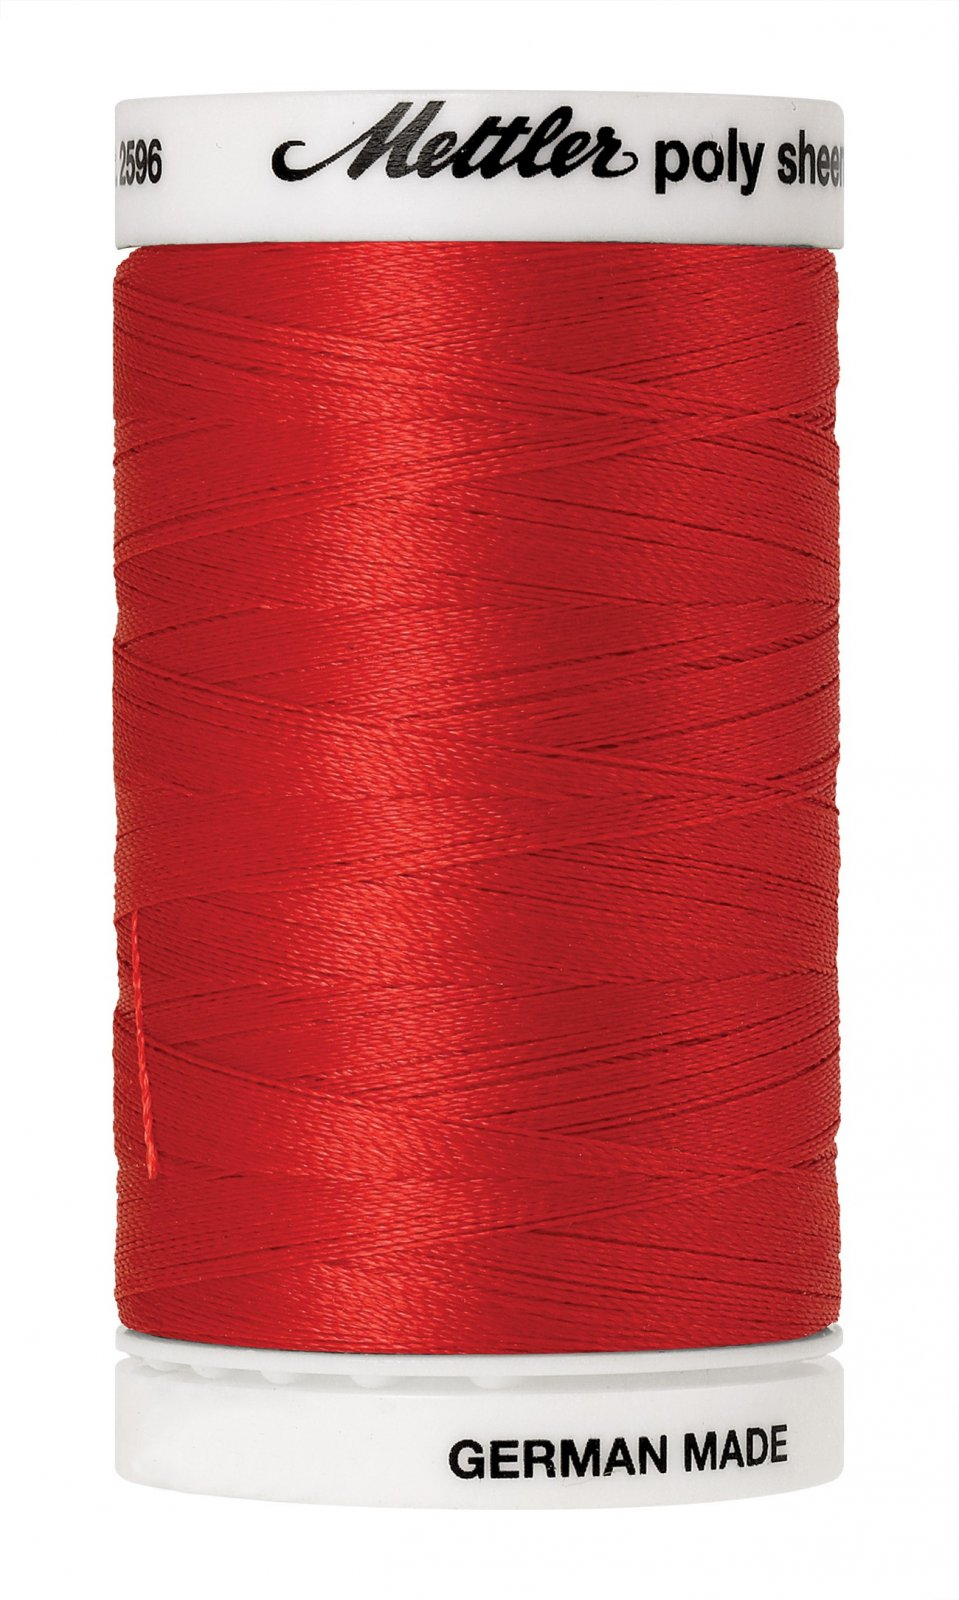 Poly Sheen Polyester Embroidery Thread 40wt 140d 800m/875yds Poppy